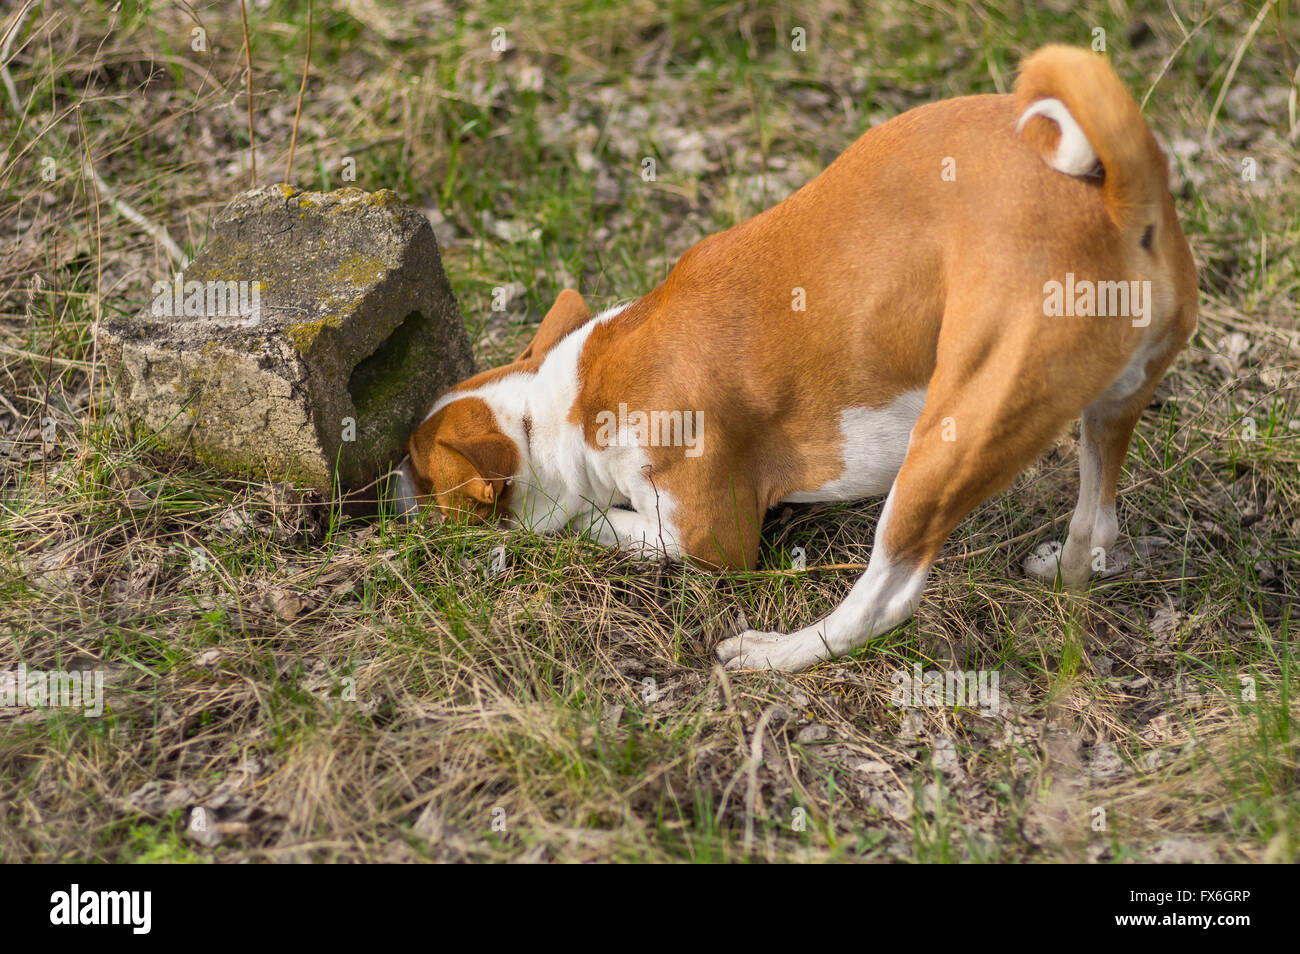 Cunning basenji dog chasing after rodent which hiding under a stone - Stock Image